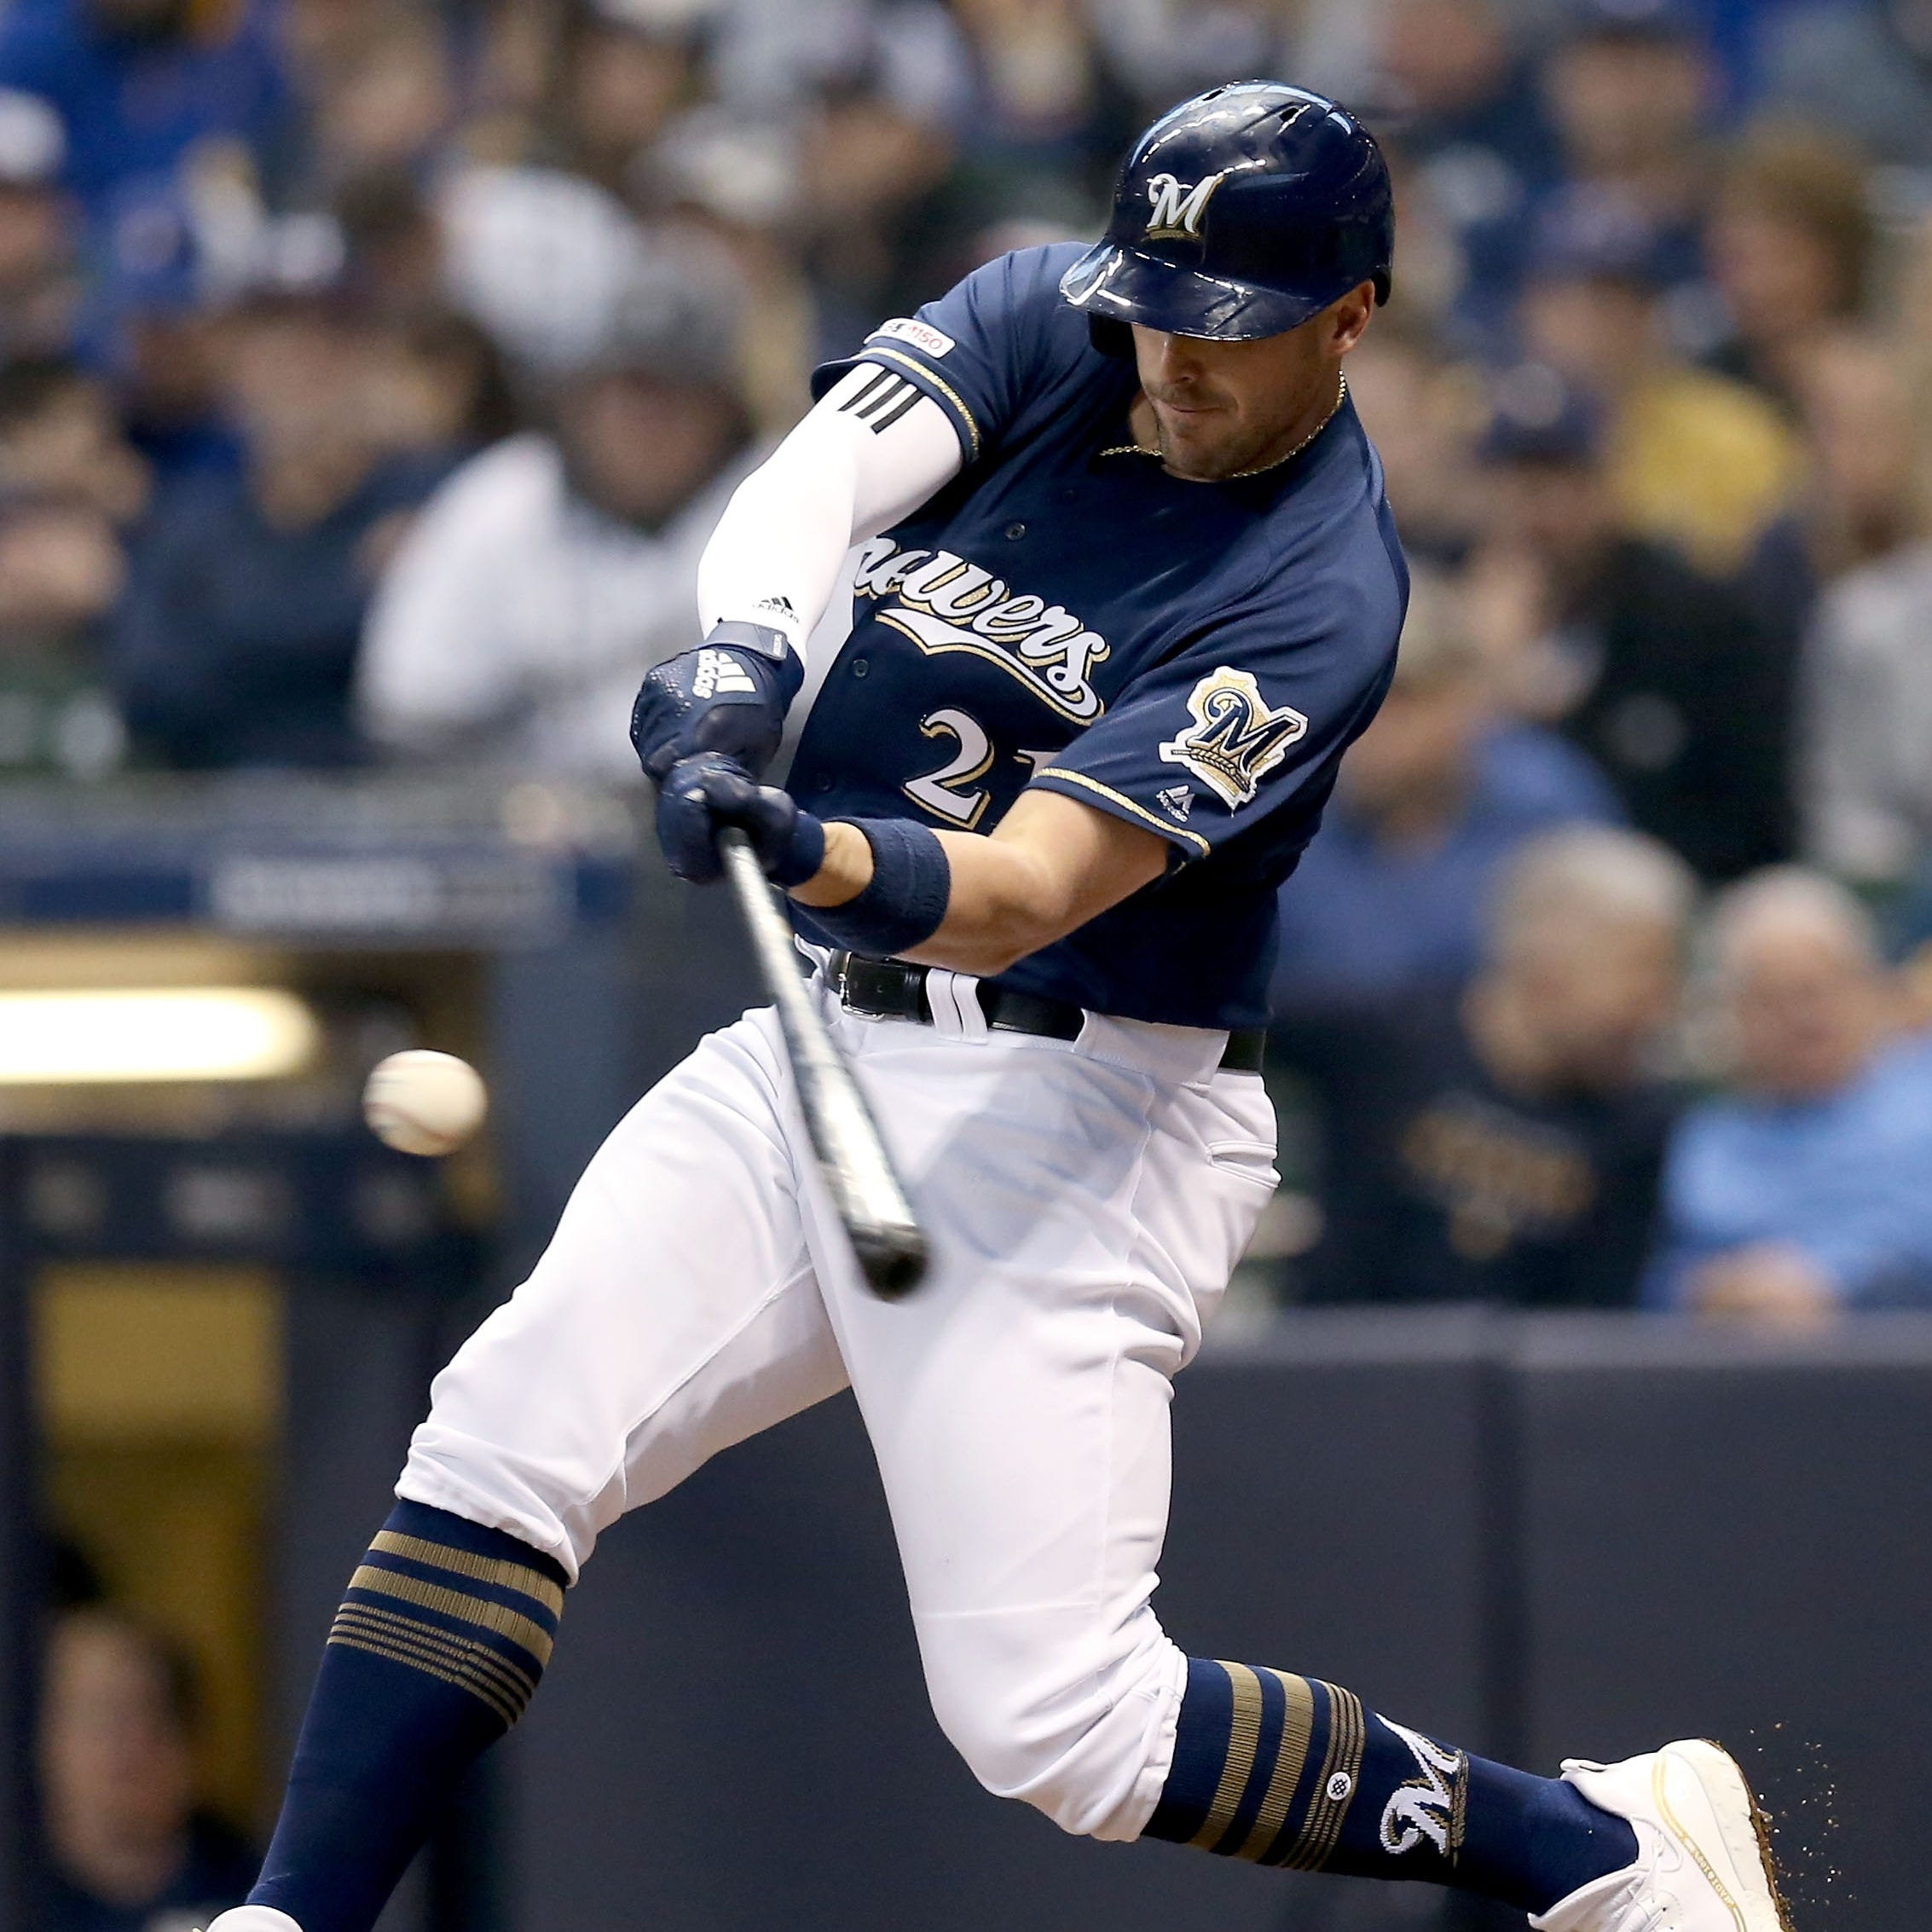 Notes: Brewers third baseman Travis Shaw gets weekend timeout to focus on breaking loose